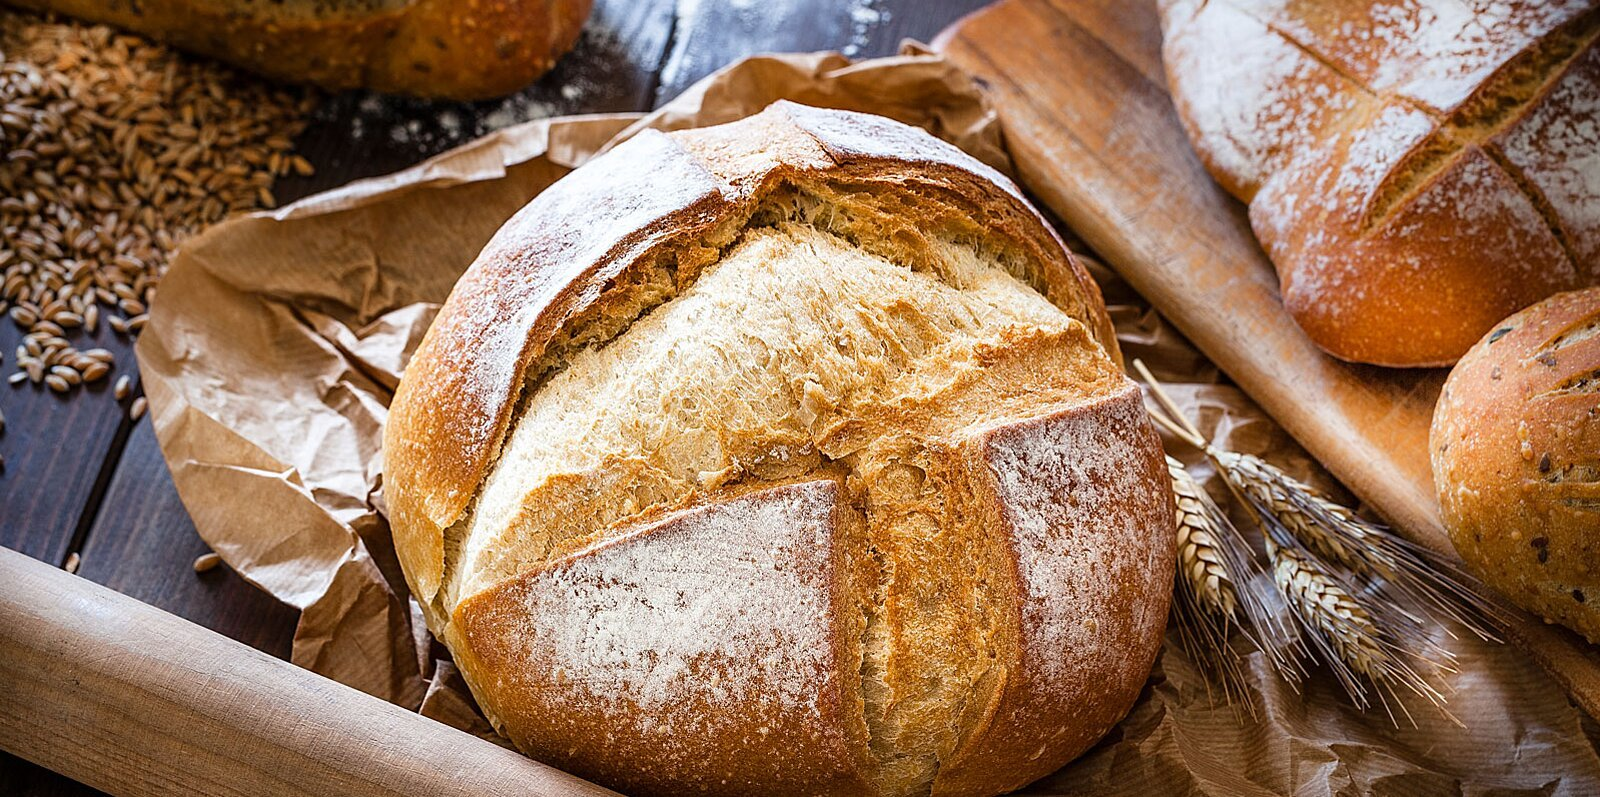 How to Bake Excellent Bread at Home